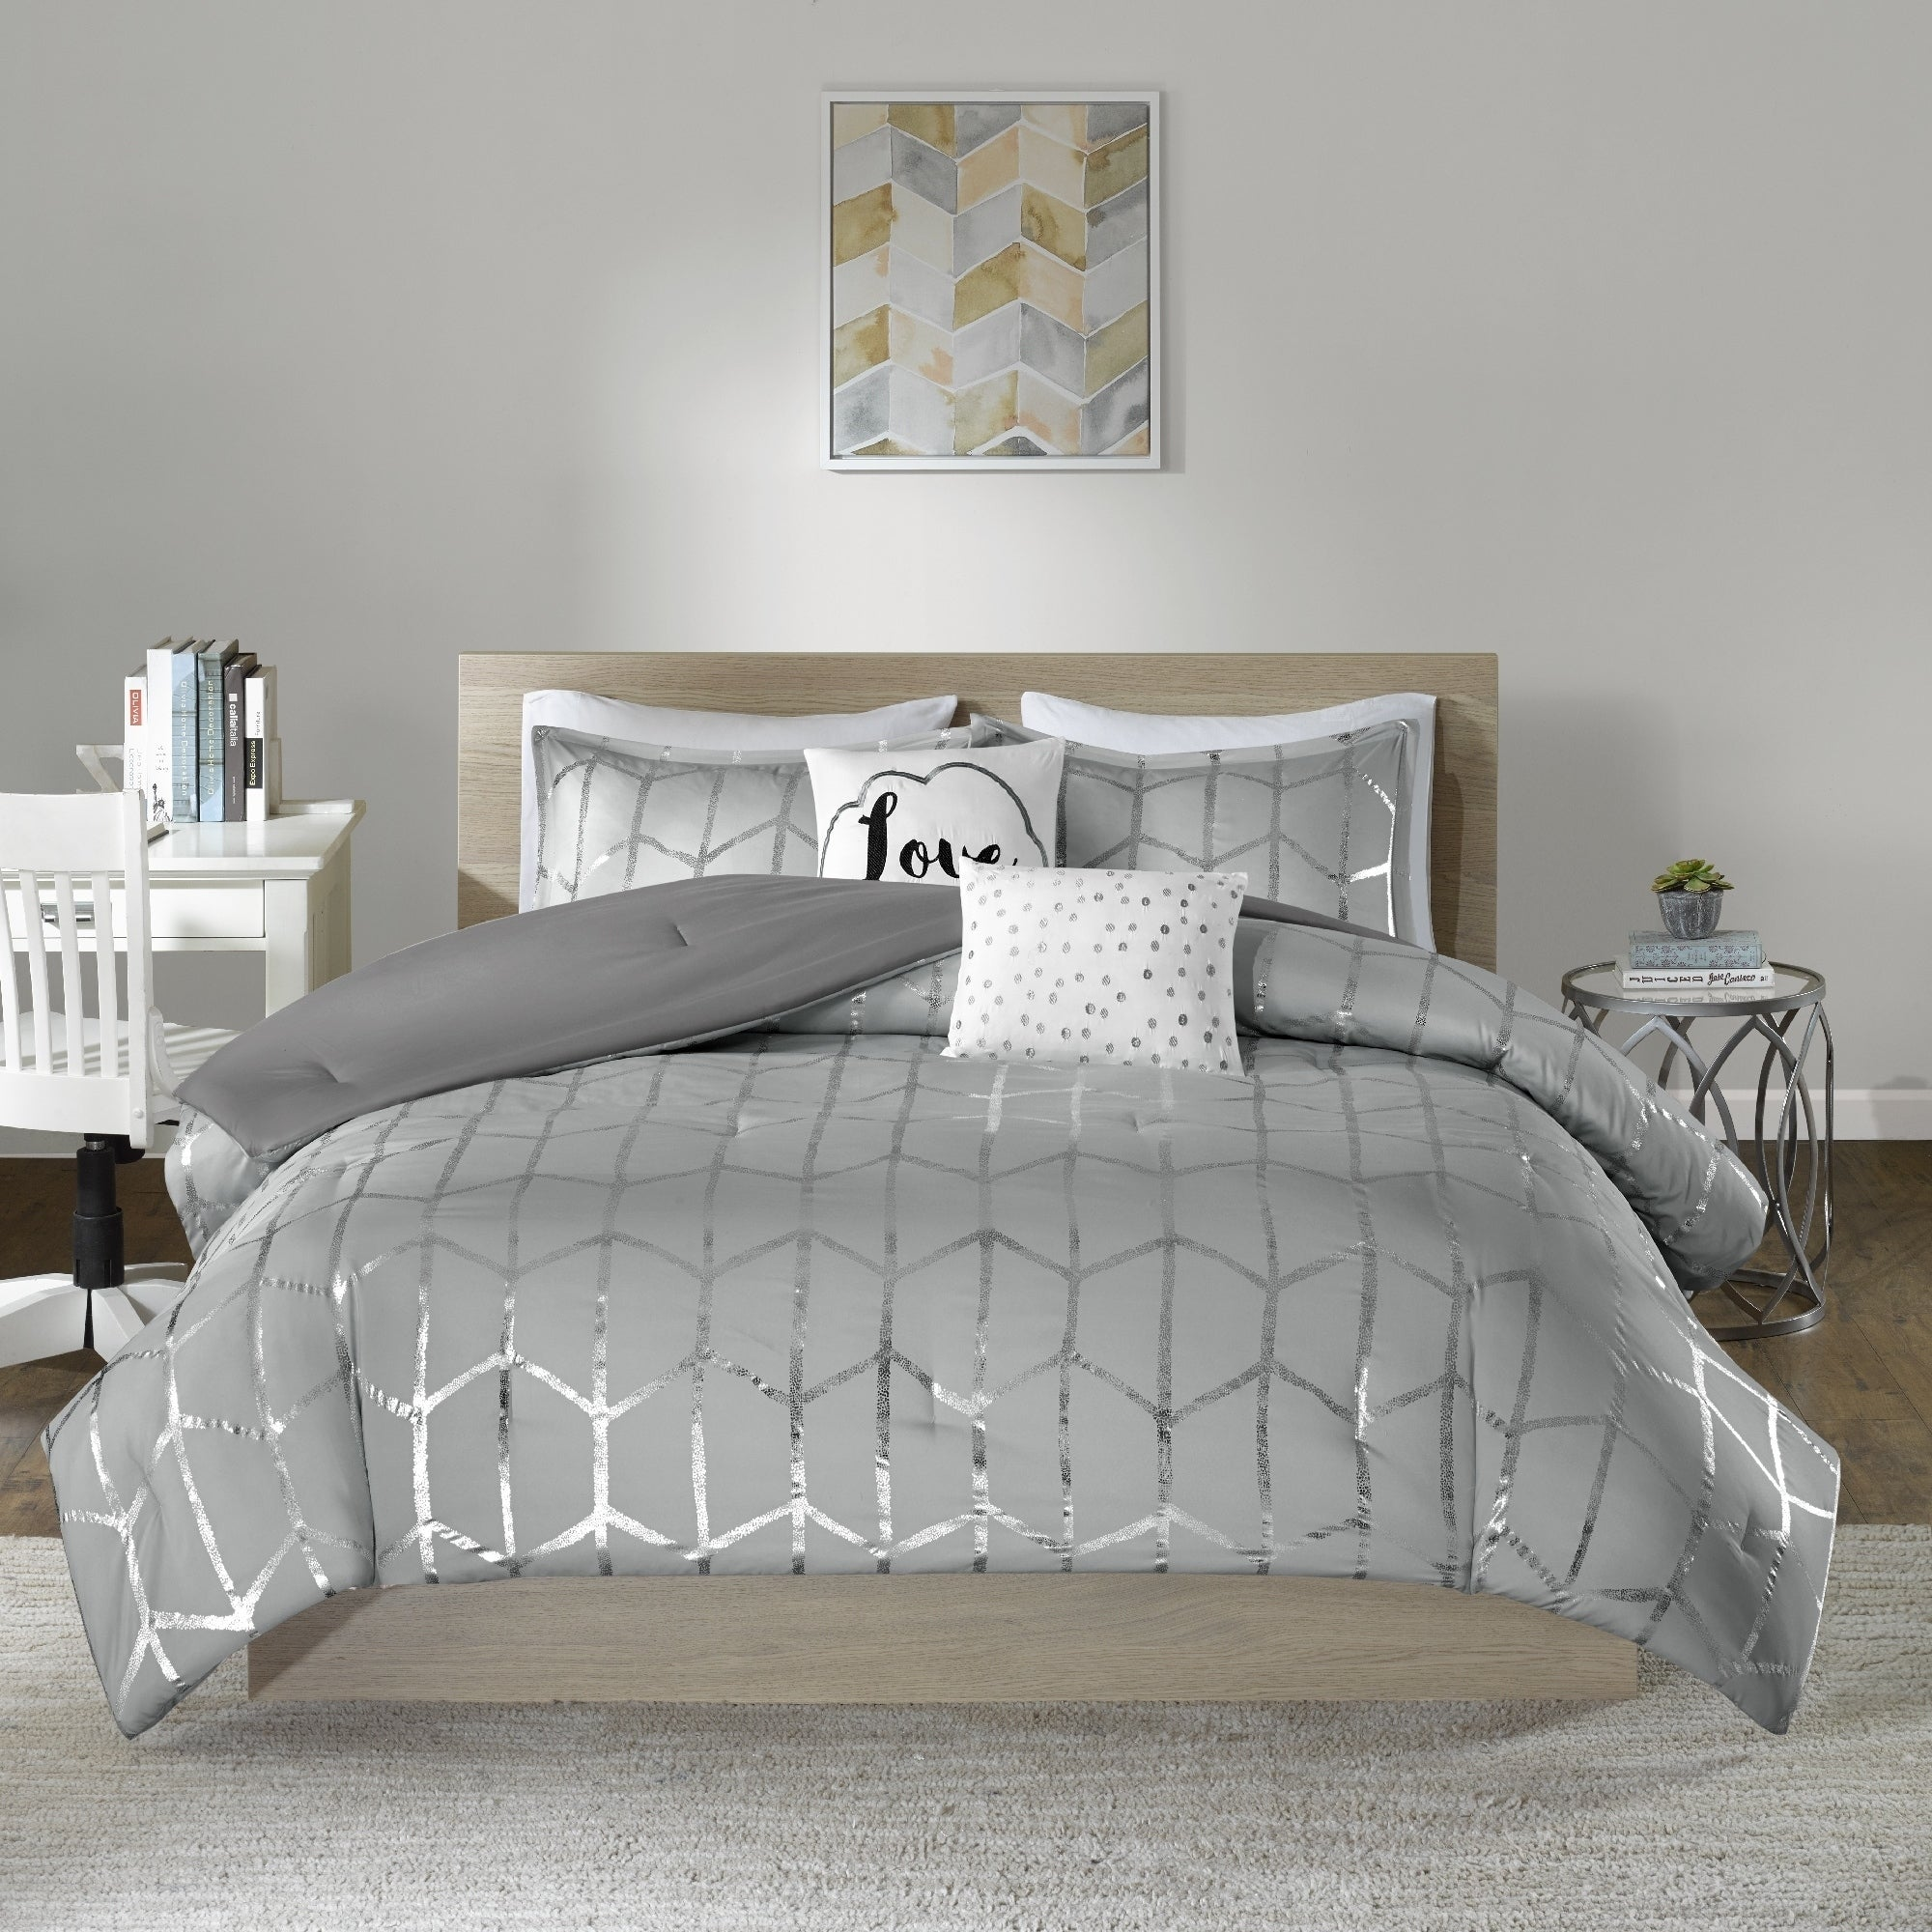 Shop Intelligent Design Khloe Metallic Printed 5 Piece Comforter Set